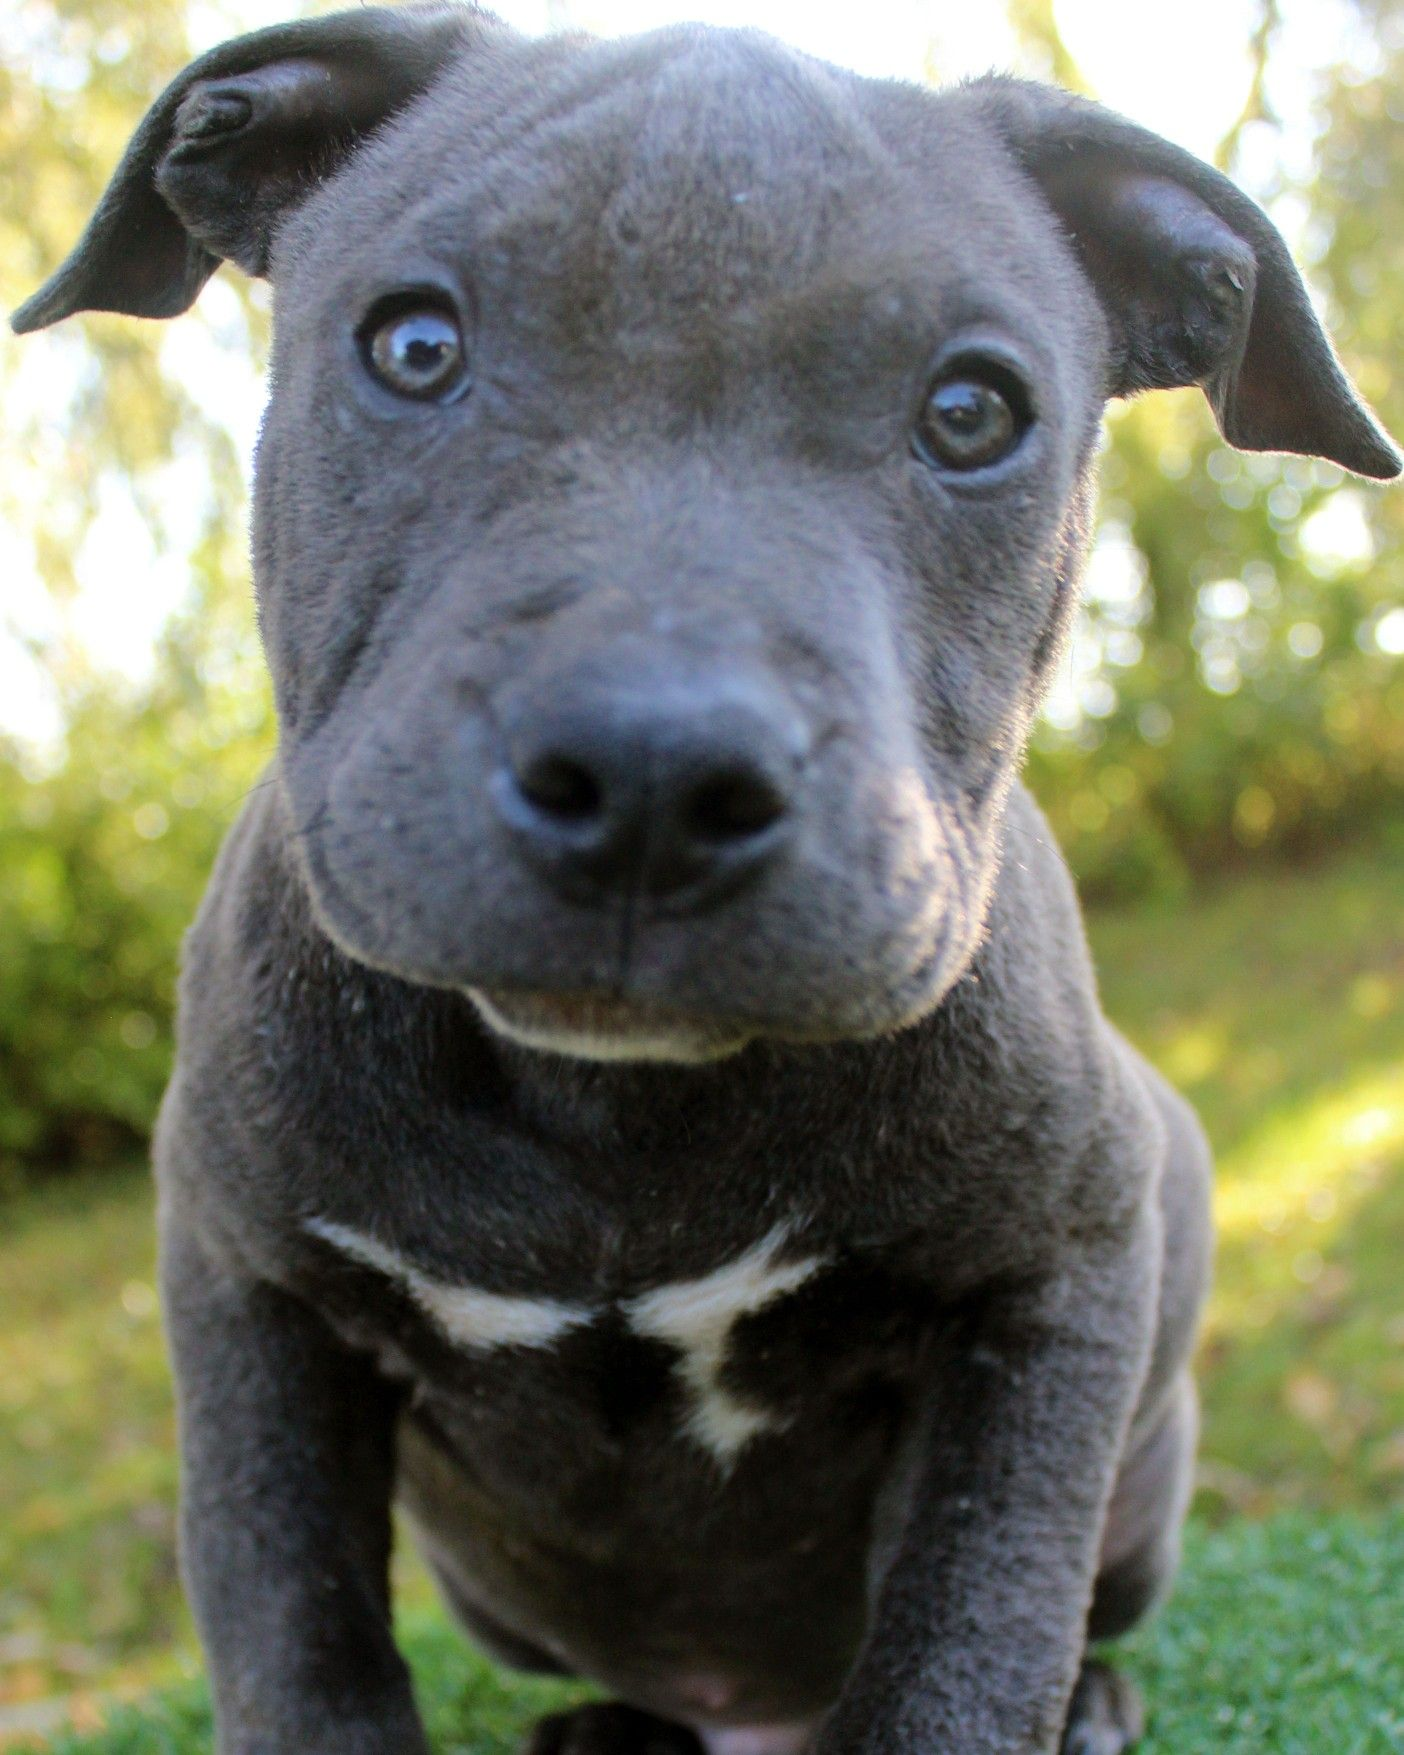 Here is a photo of an amazing male blue pitbull puppy that